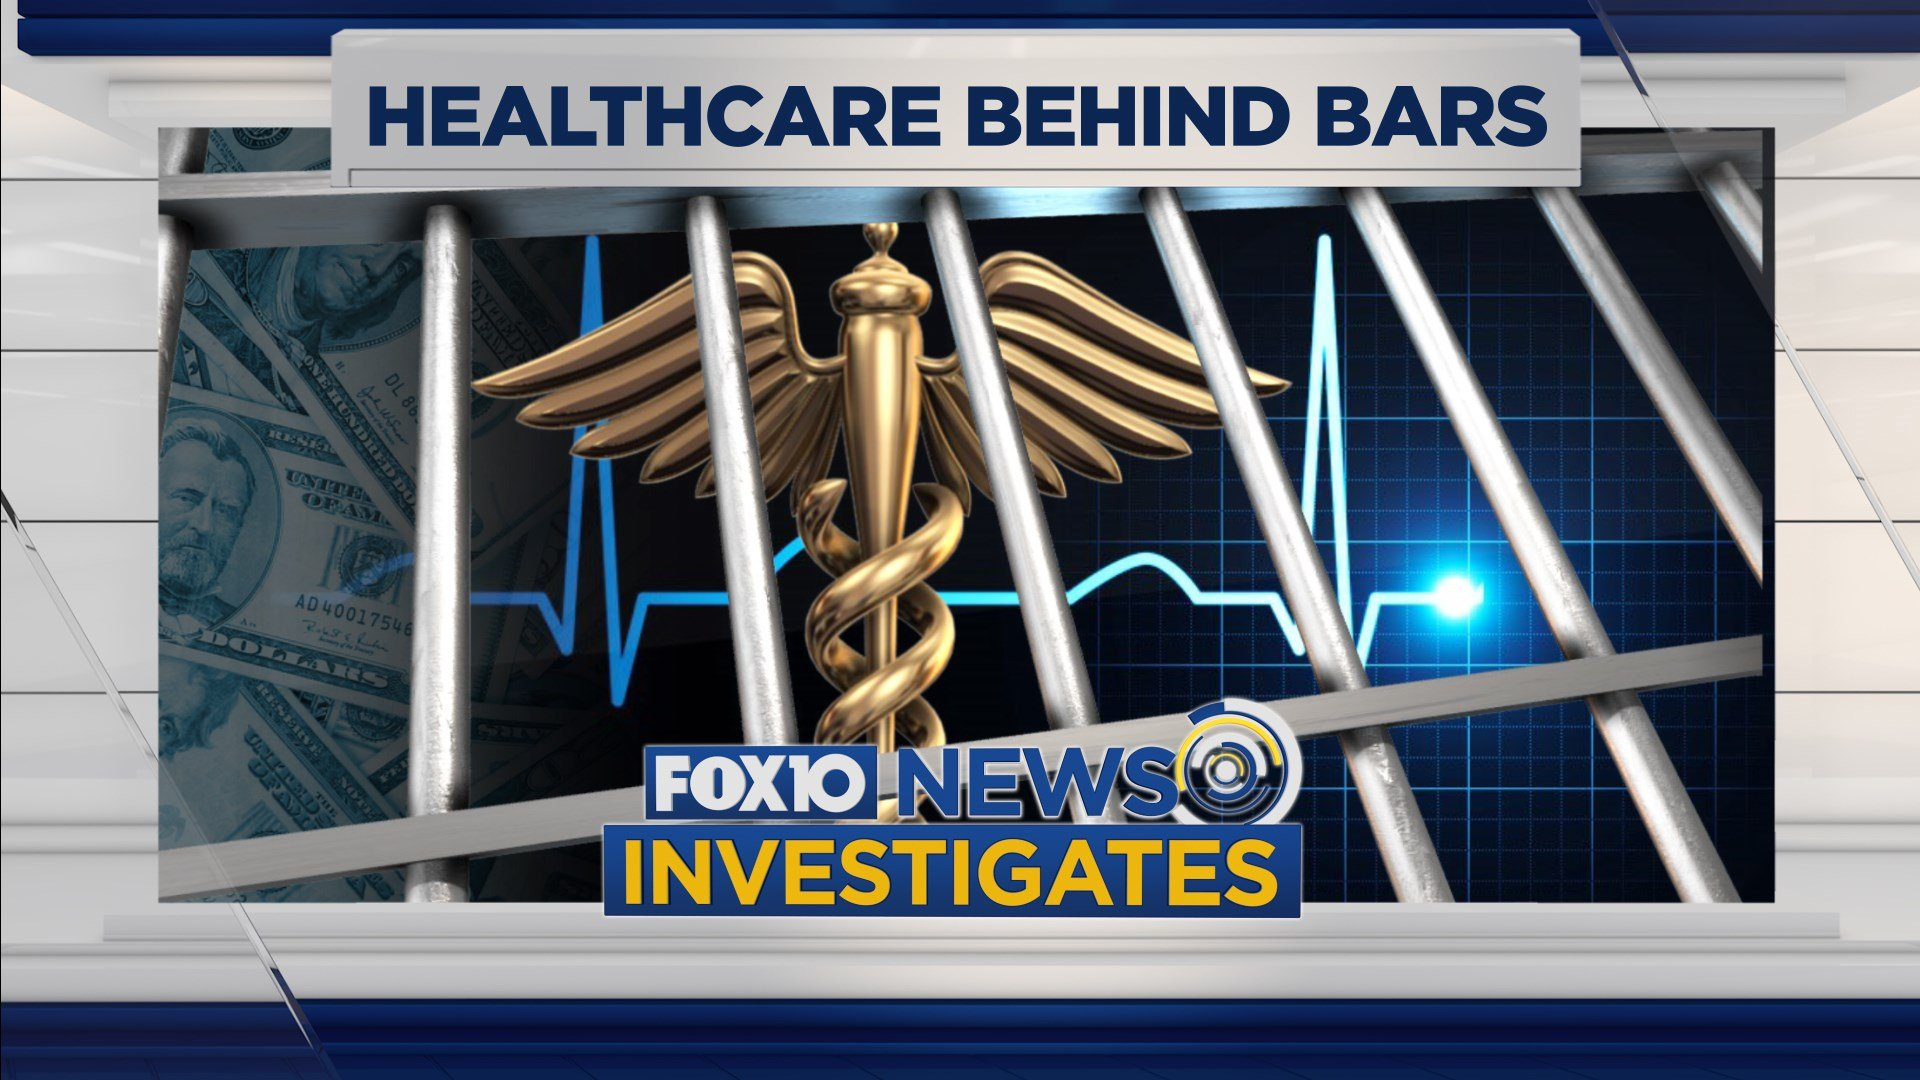 FOX10 News Investigates: Healthcare Behind Bars. Photo: FOX10 News.